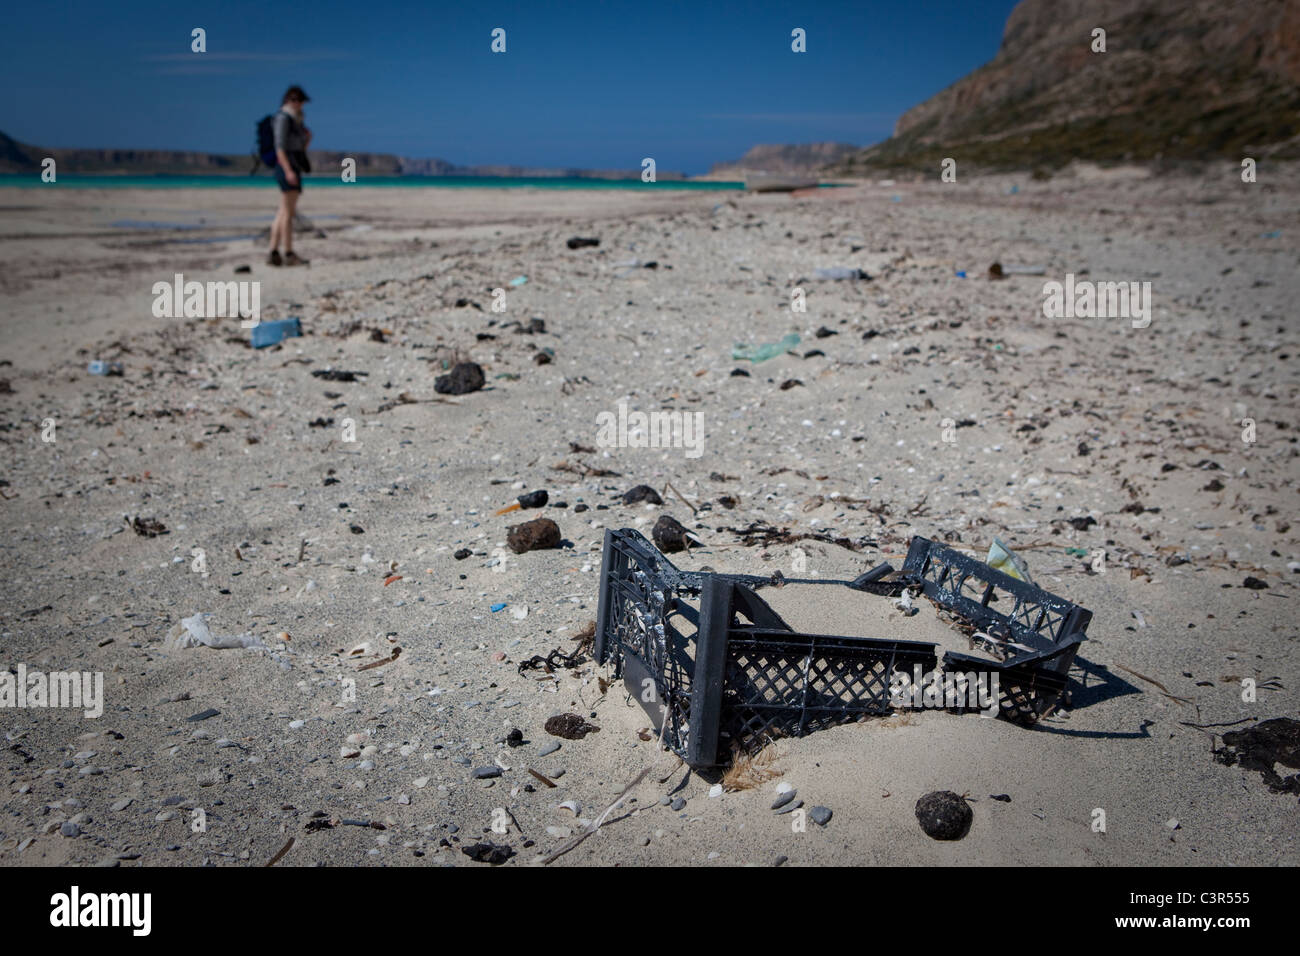 Plastic rubbish and oil tarball, Balos Beach, Crete, Greece. - Stock Image